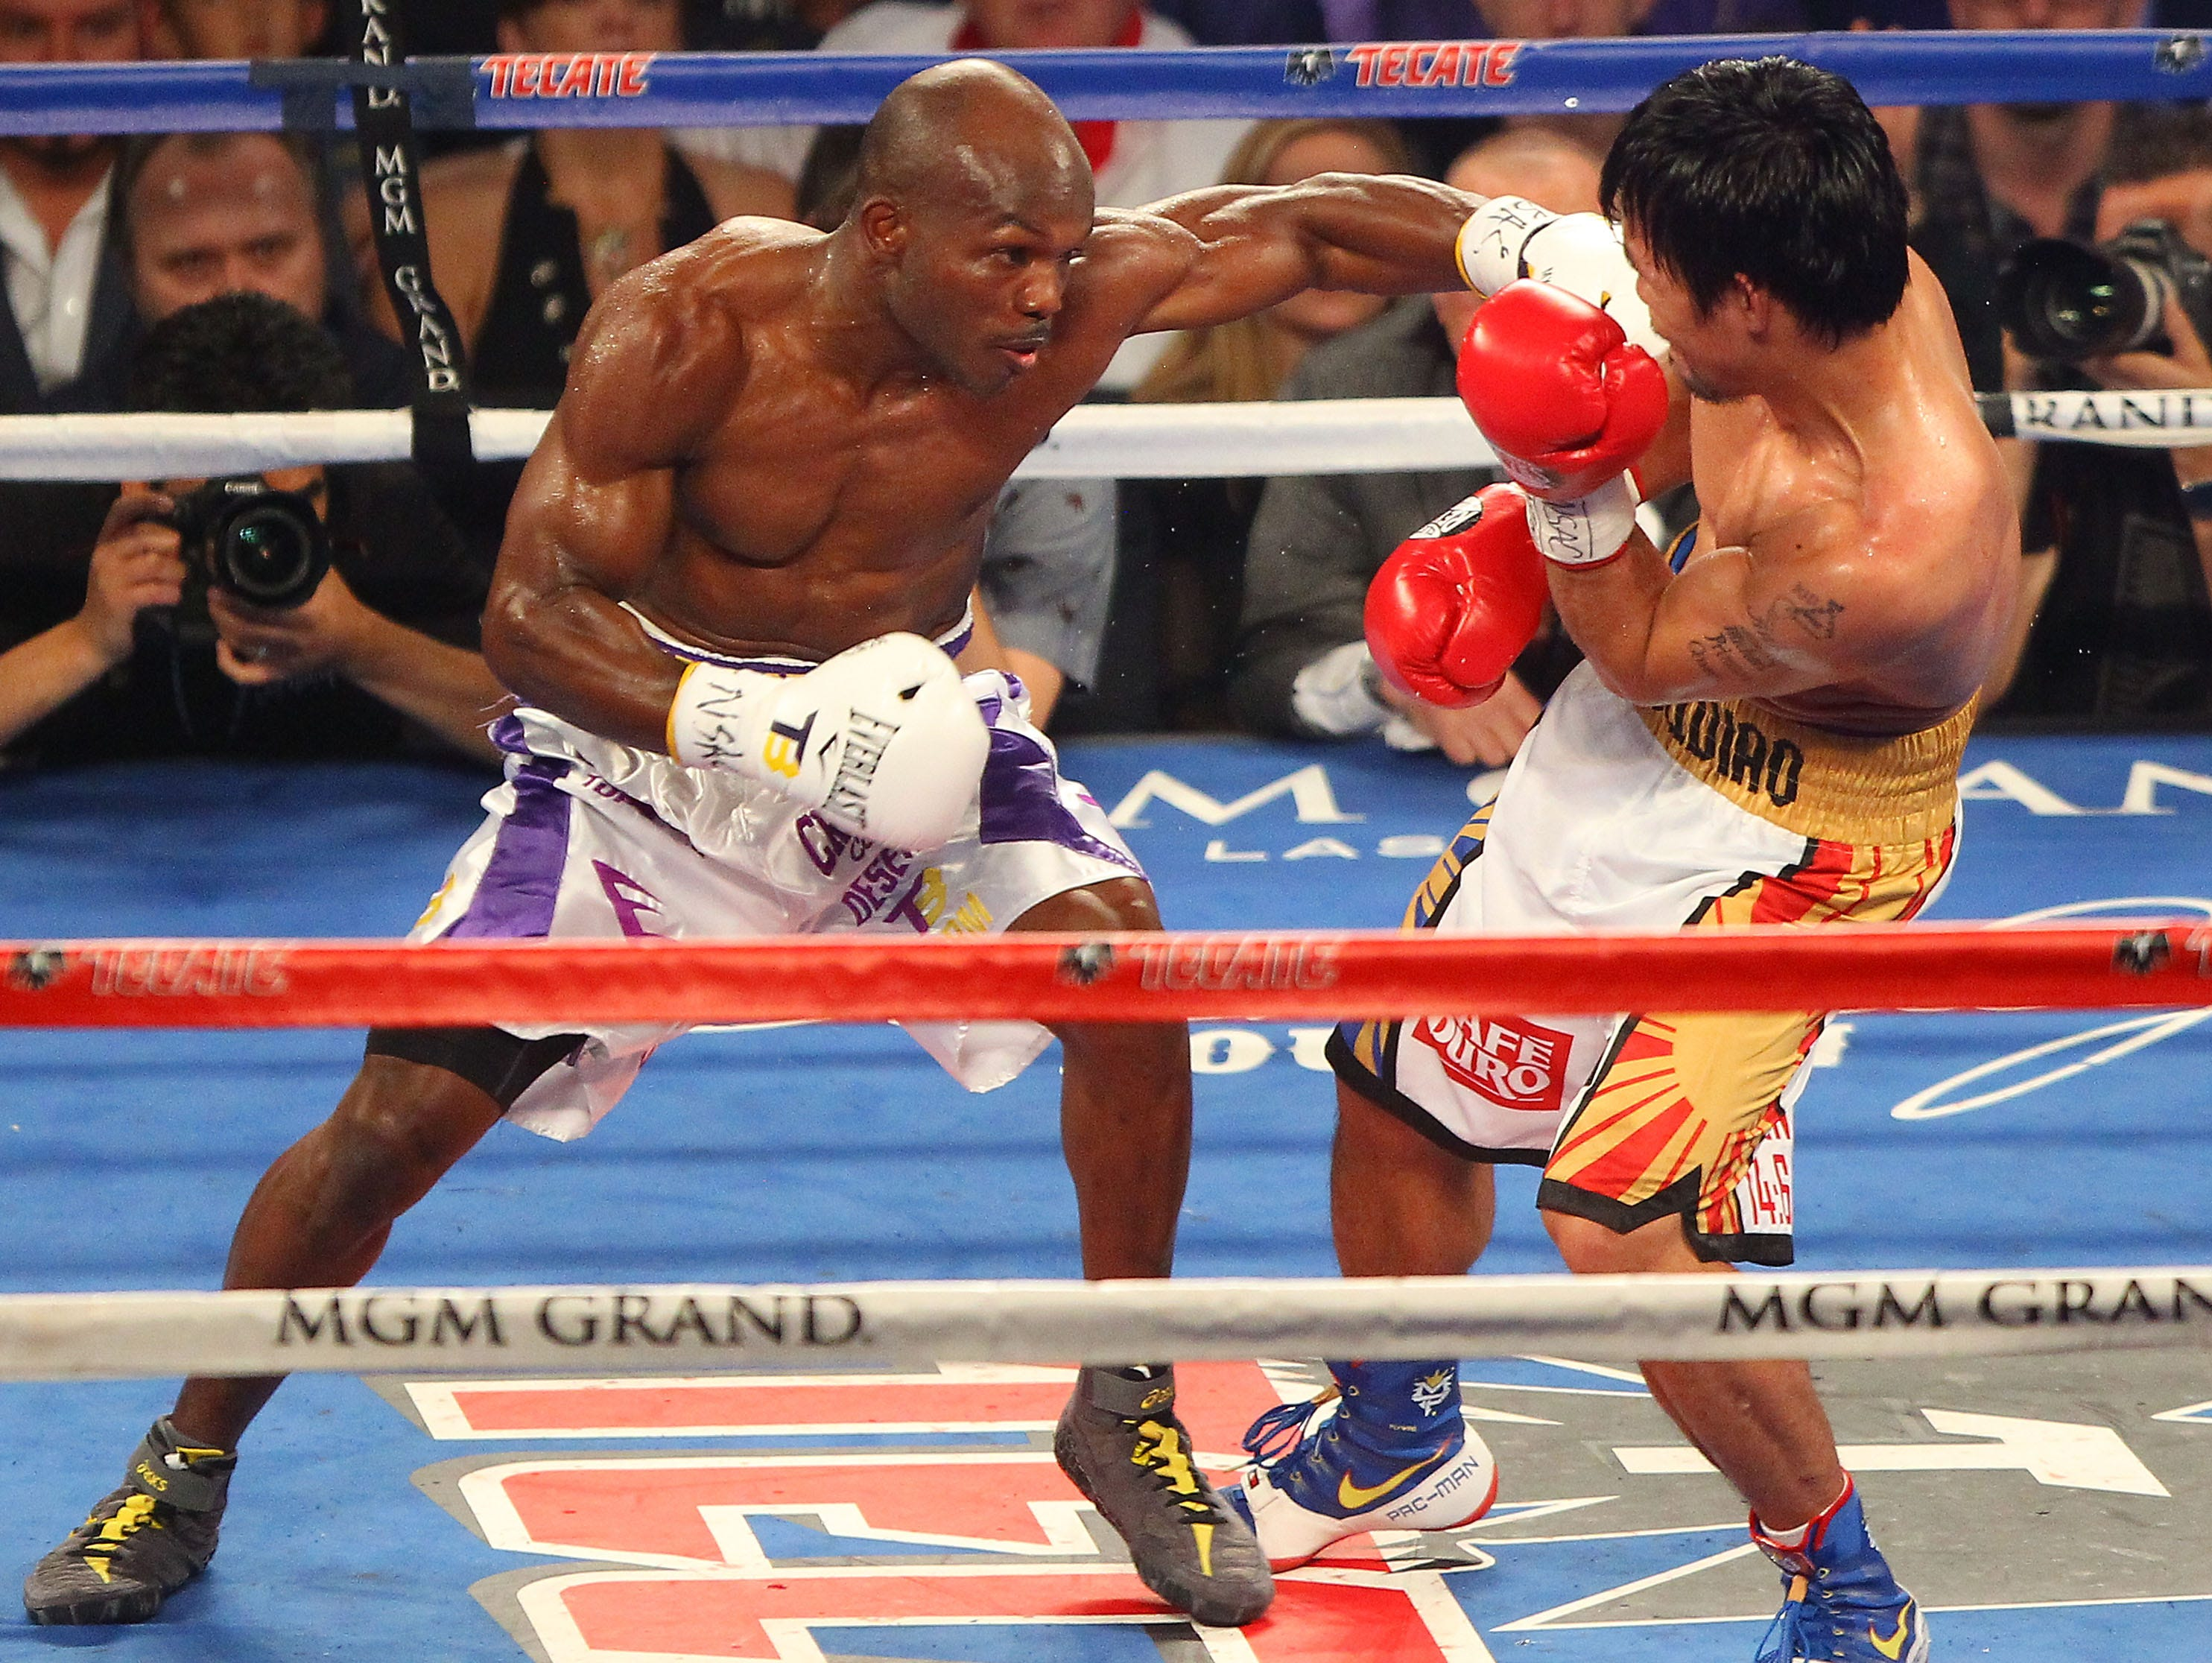 Tim Bradley punches Manny Pacquiao during their fight at the MGM Grand in Las Vegas, April 9, 2016.